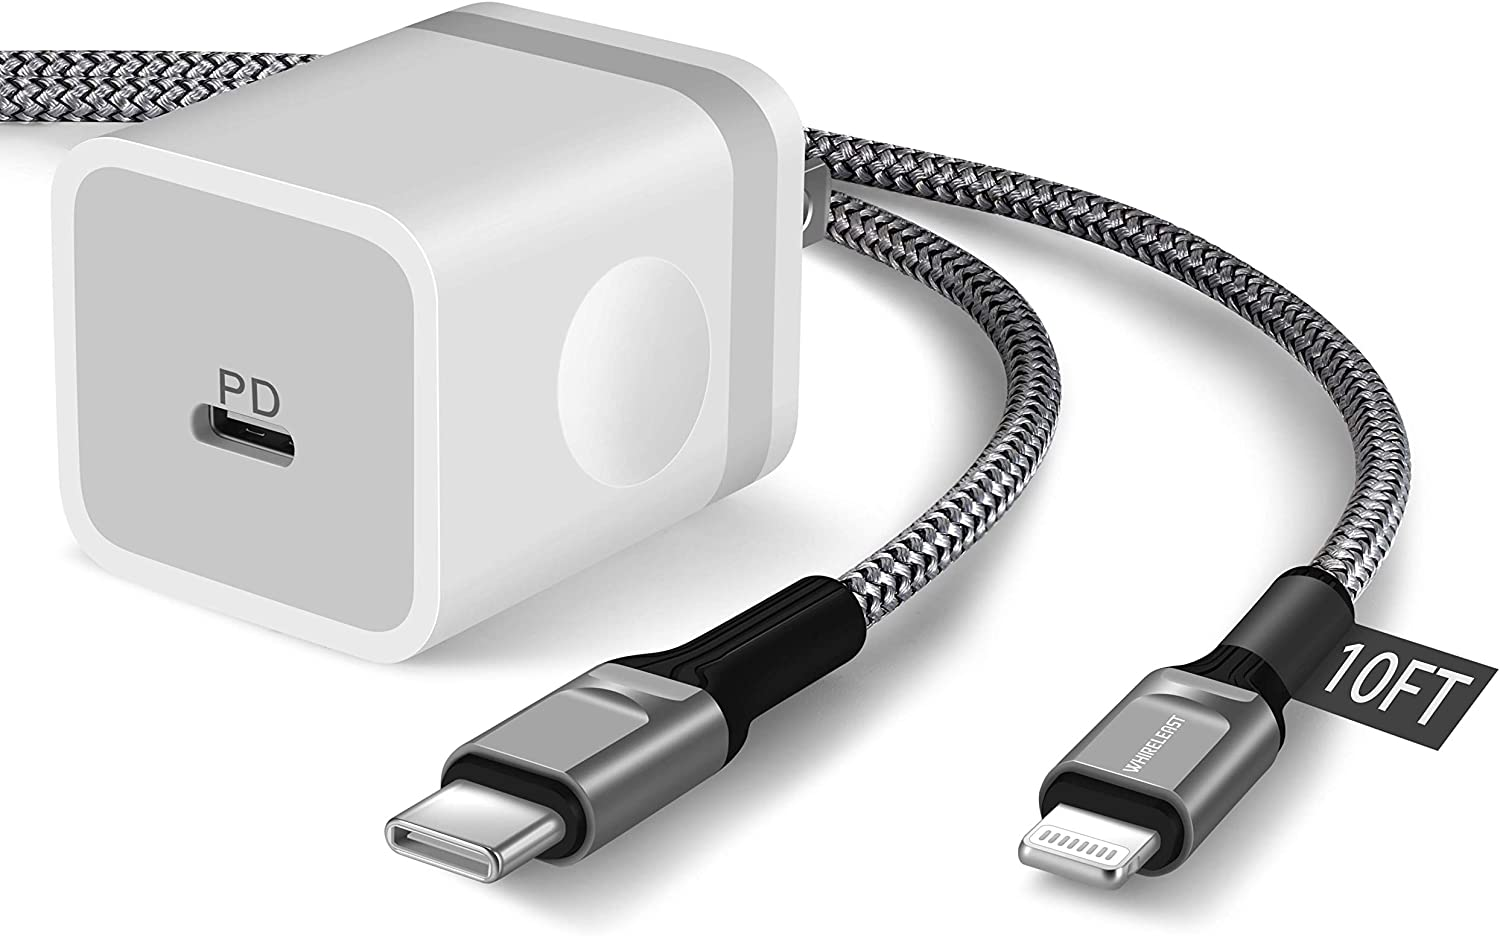 iPhone Fast Charger 10FT MFi Certified, WHIRELEAST 20W USB C Wall Charger Plug Block with 10 Foot Braided Long USB C to Lightning Charger Cable for iPhone 12/12 Pro Max/11/XS/XR/X/8, iPad, AirPods Pro